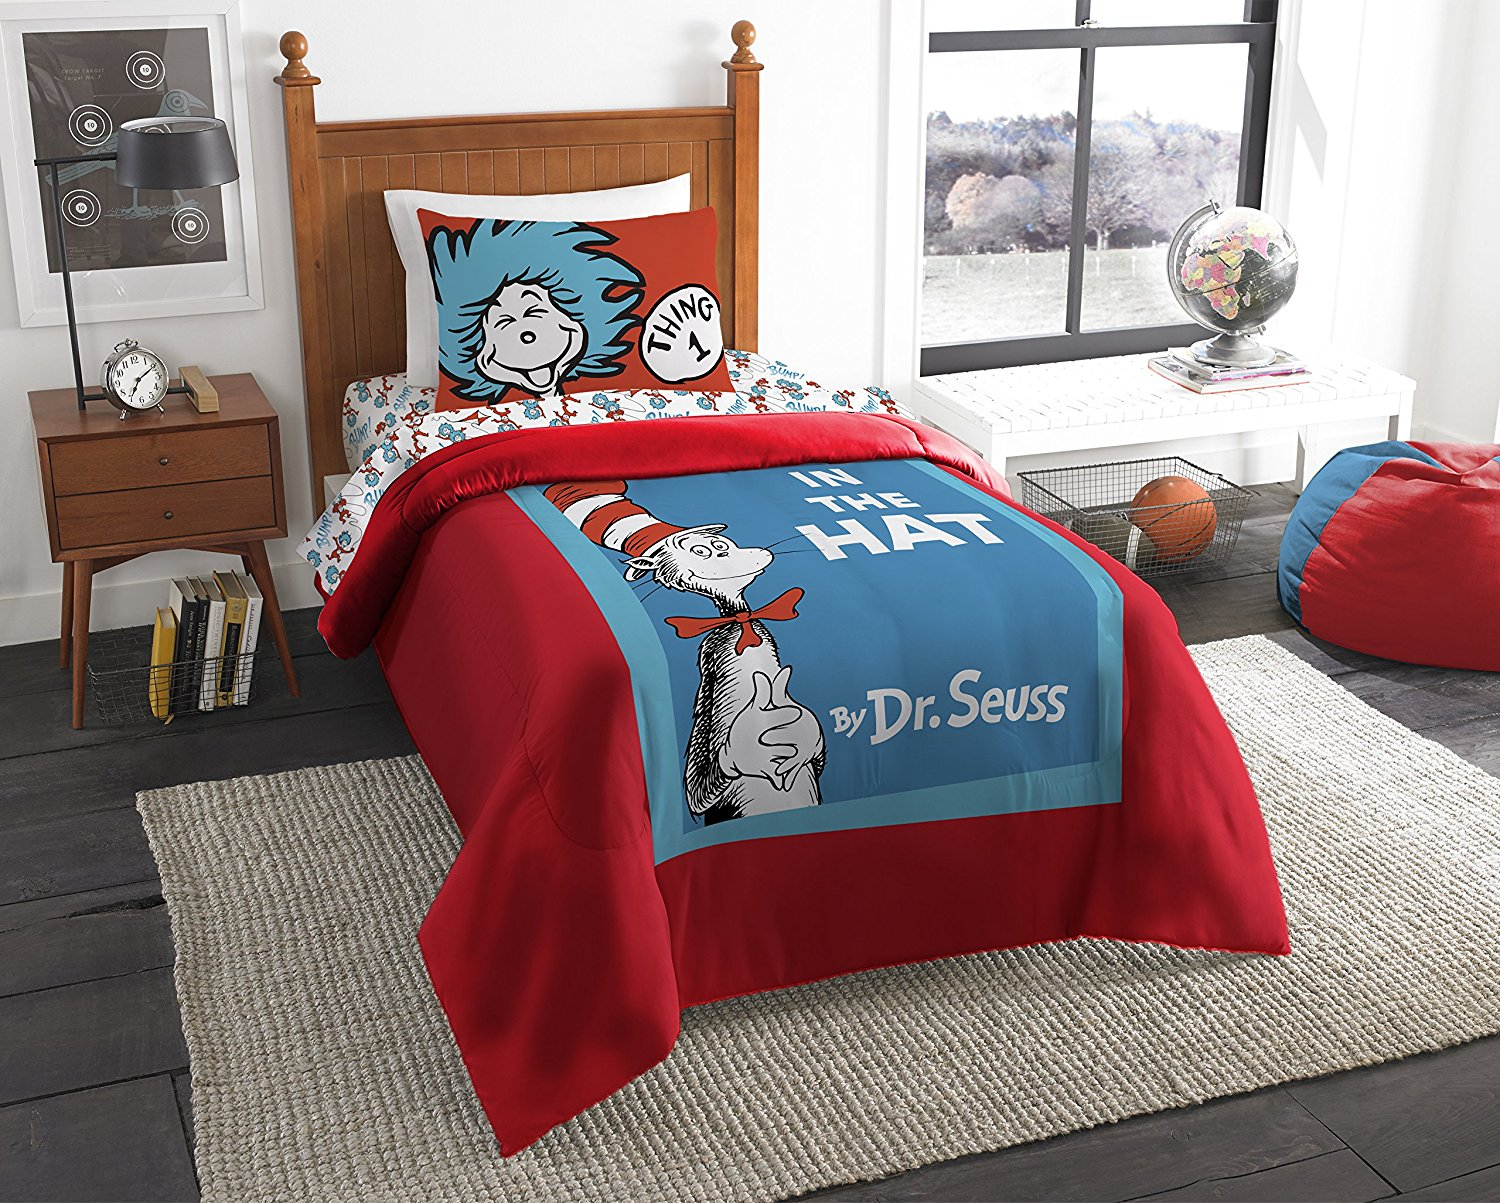 Dr Seuss Cat In The Hat Covers Twin Comforter By The